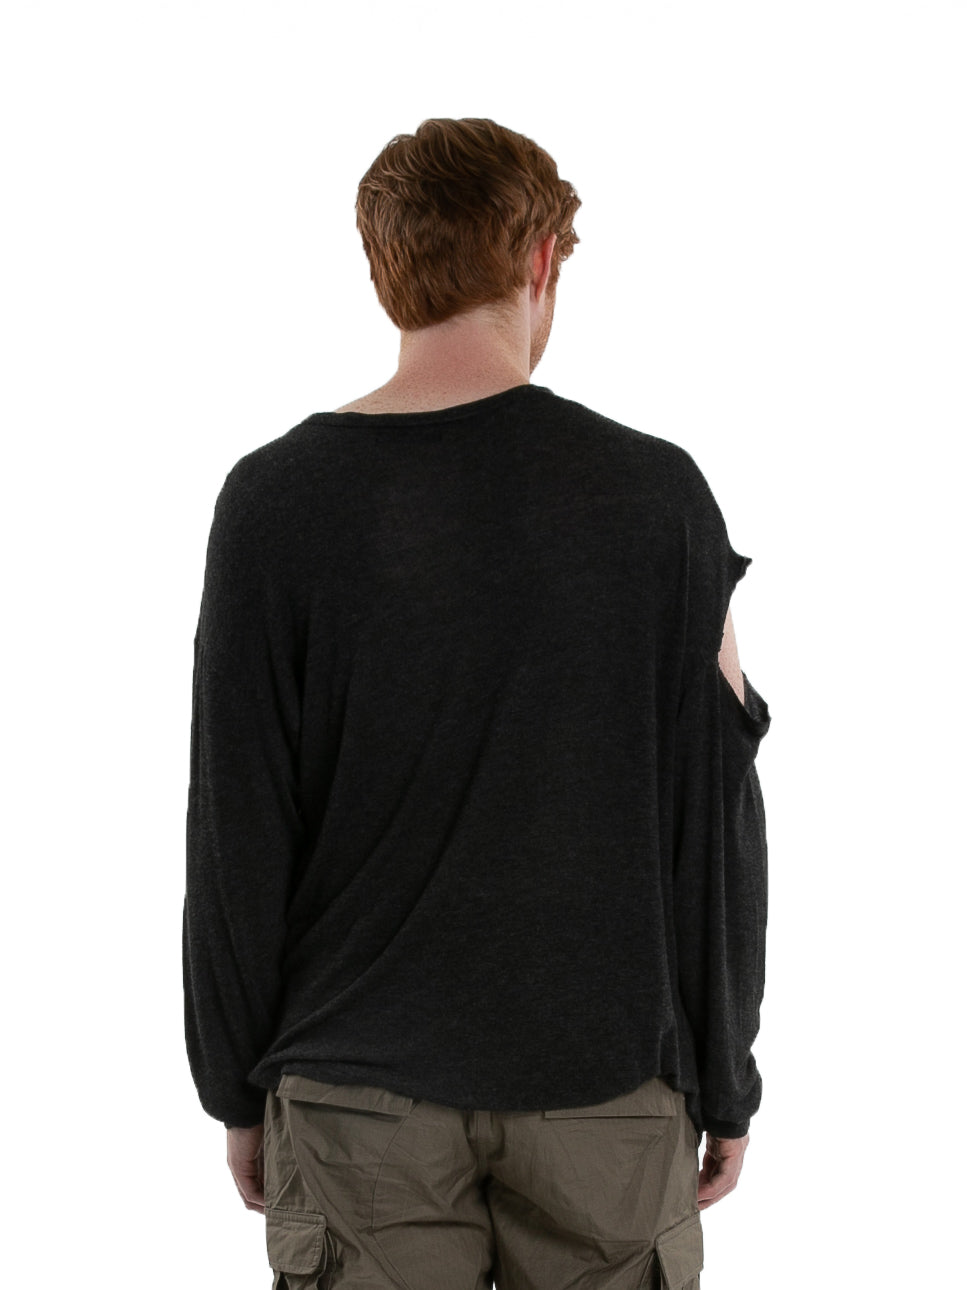 Backside of male model wearing High Brow Long Sleeve in Charcoal